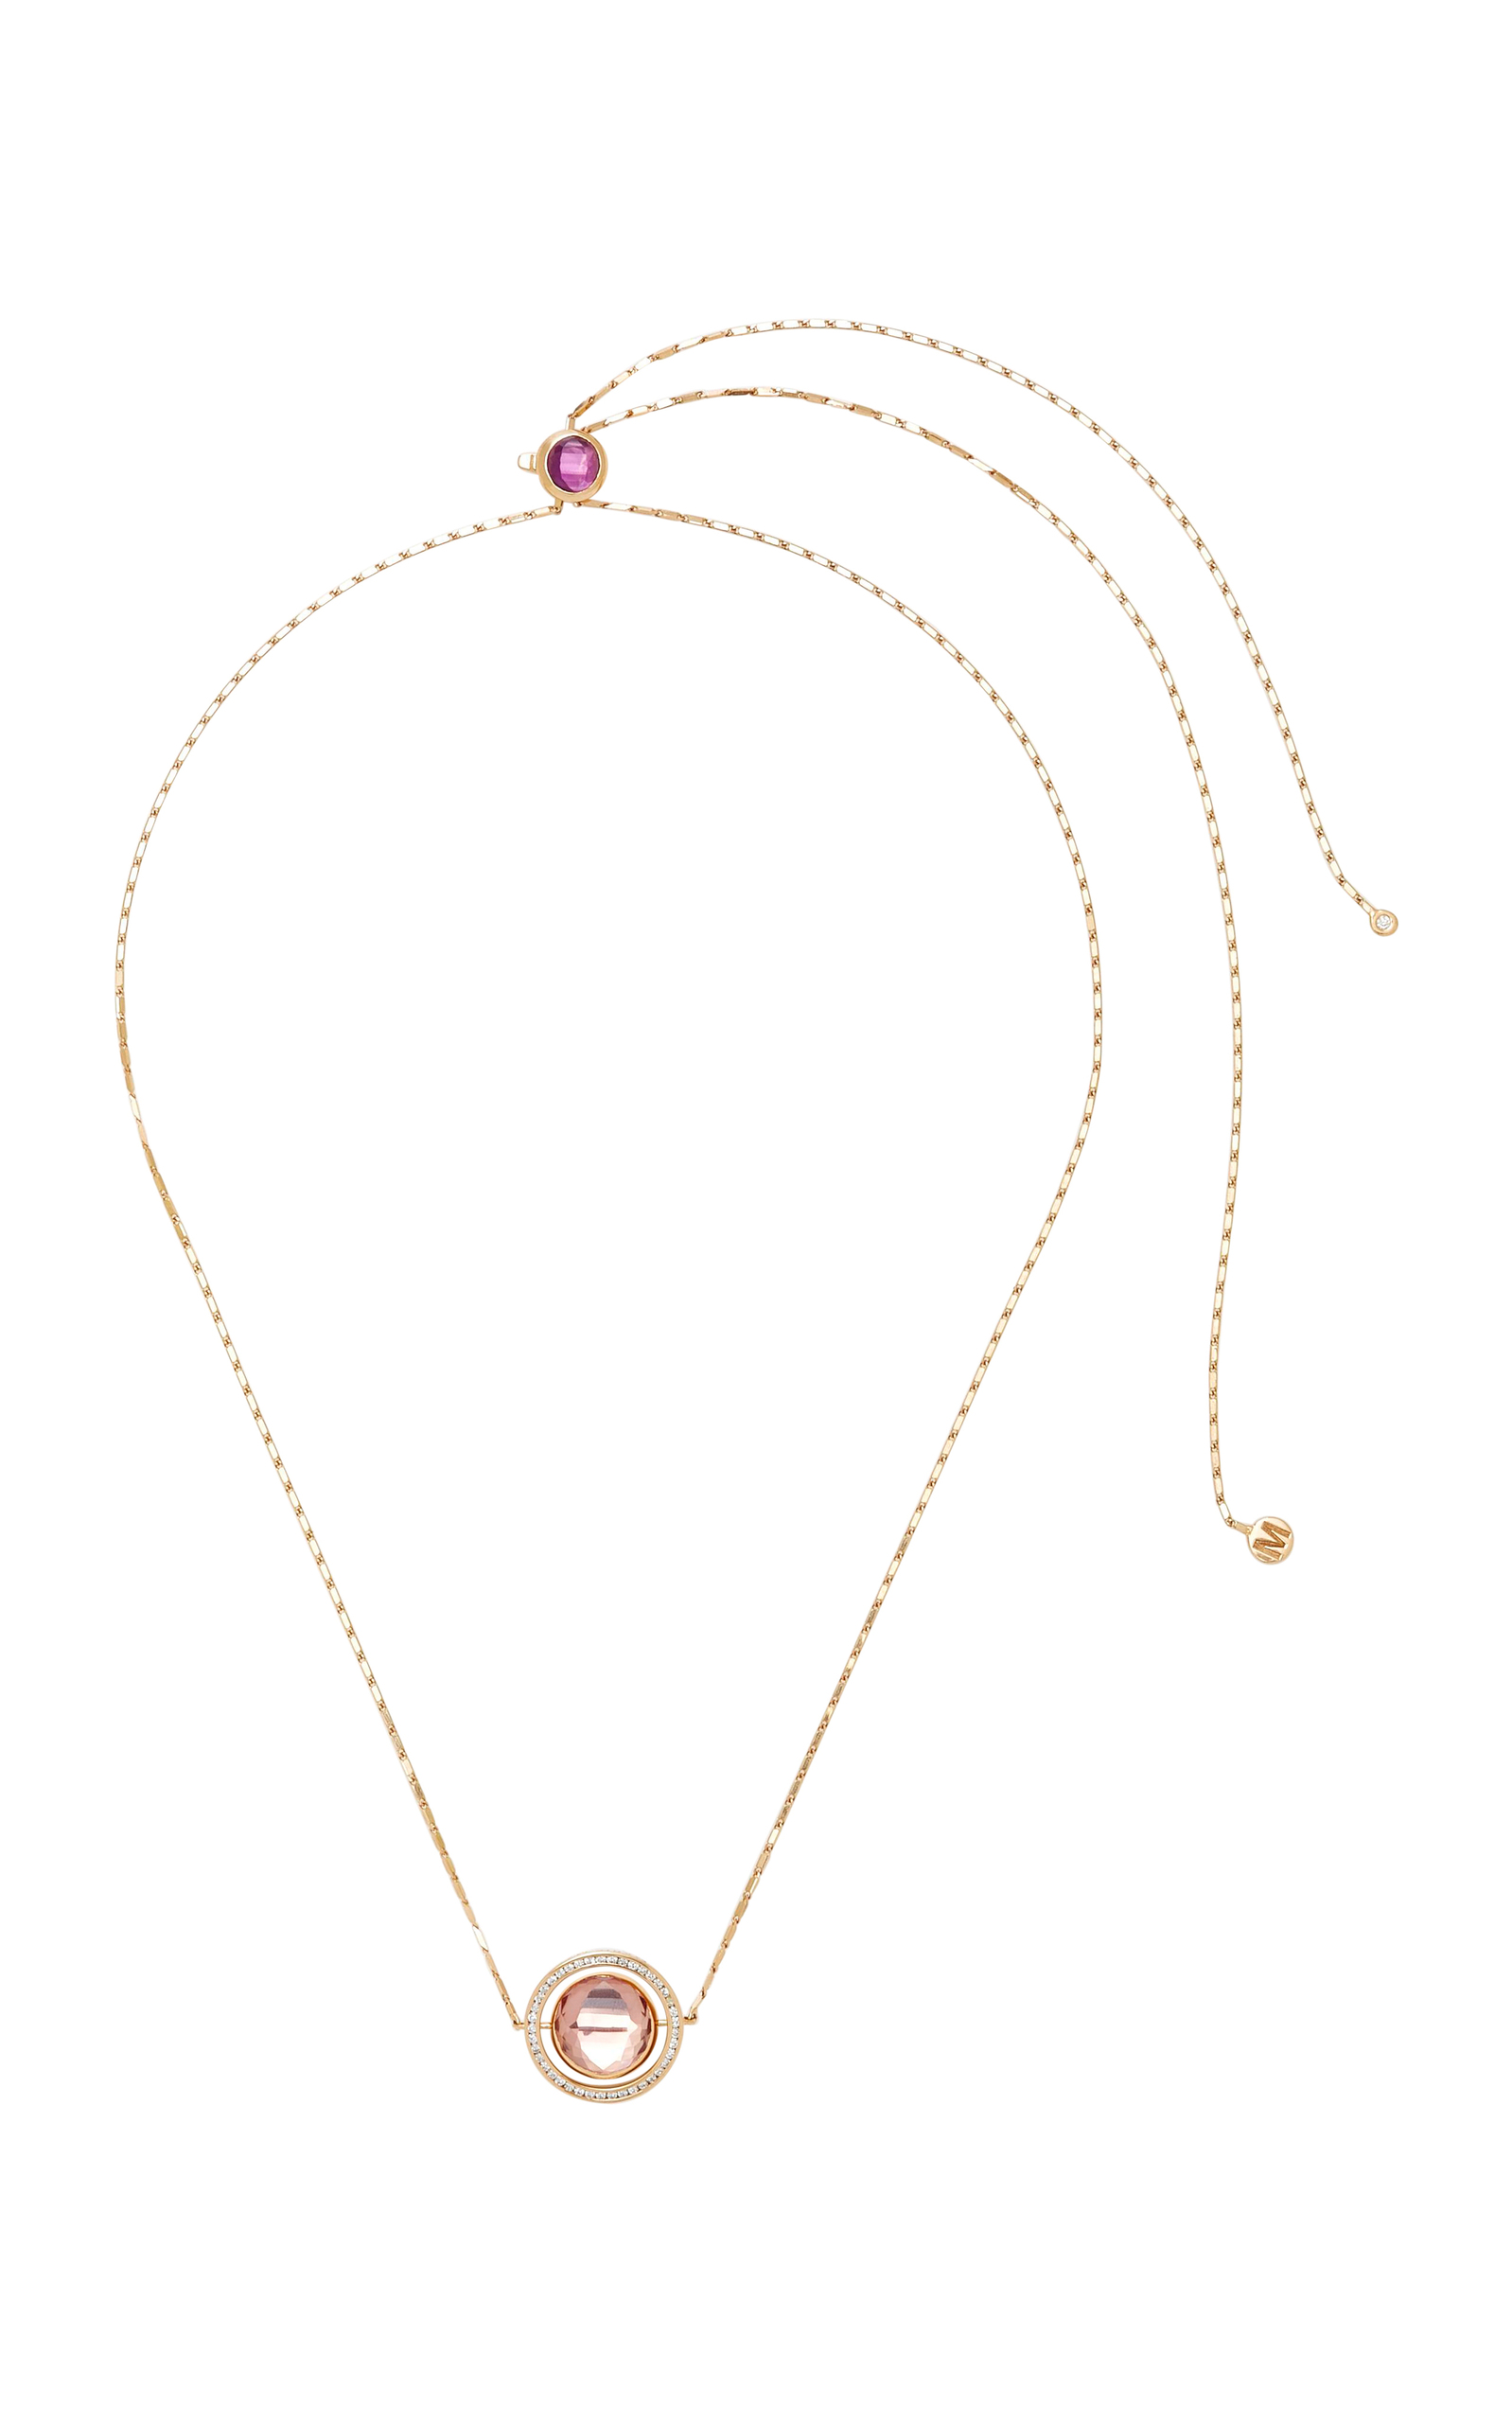 Marie Mas Swiveling Necklace atg0T7b6